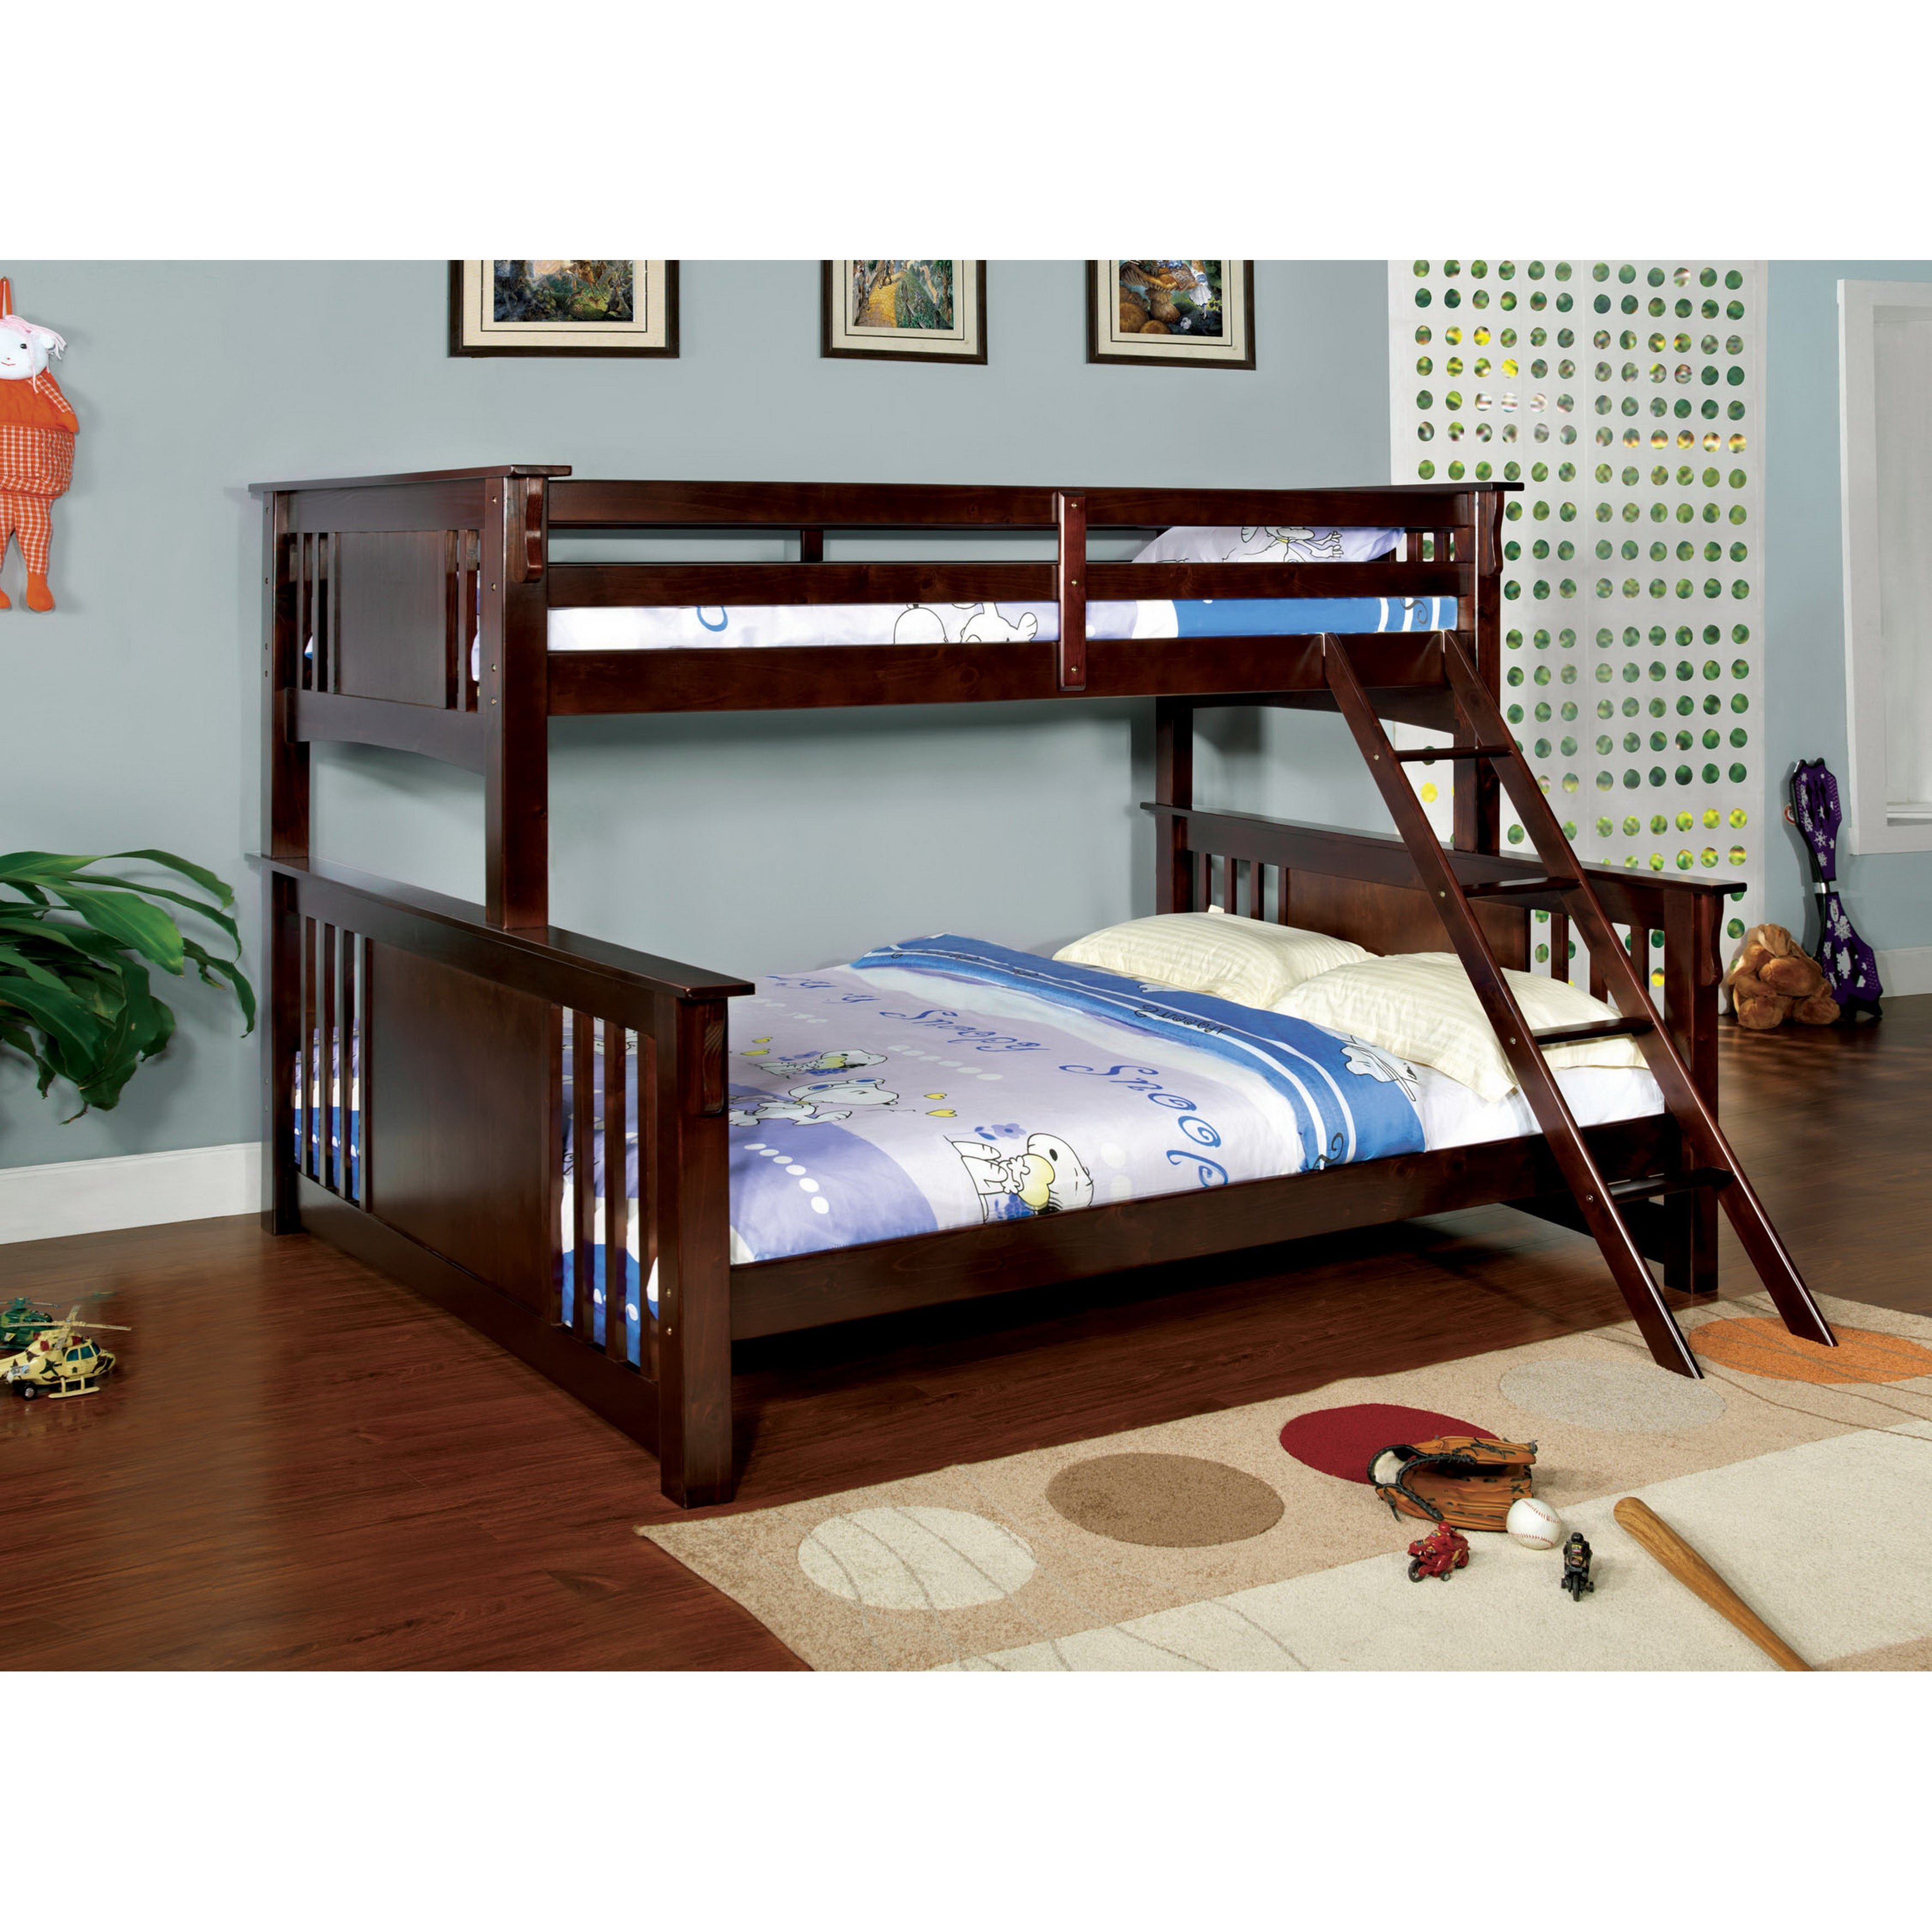 Shop Furniture Of America Junior Twin Over Queen Bunk Bed With Chest